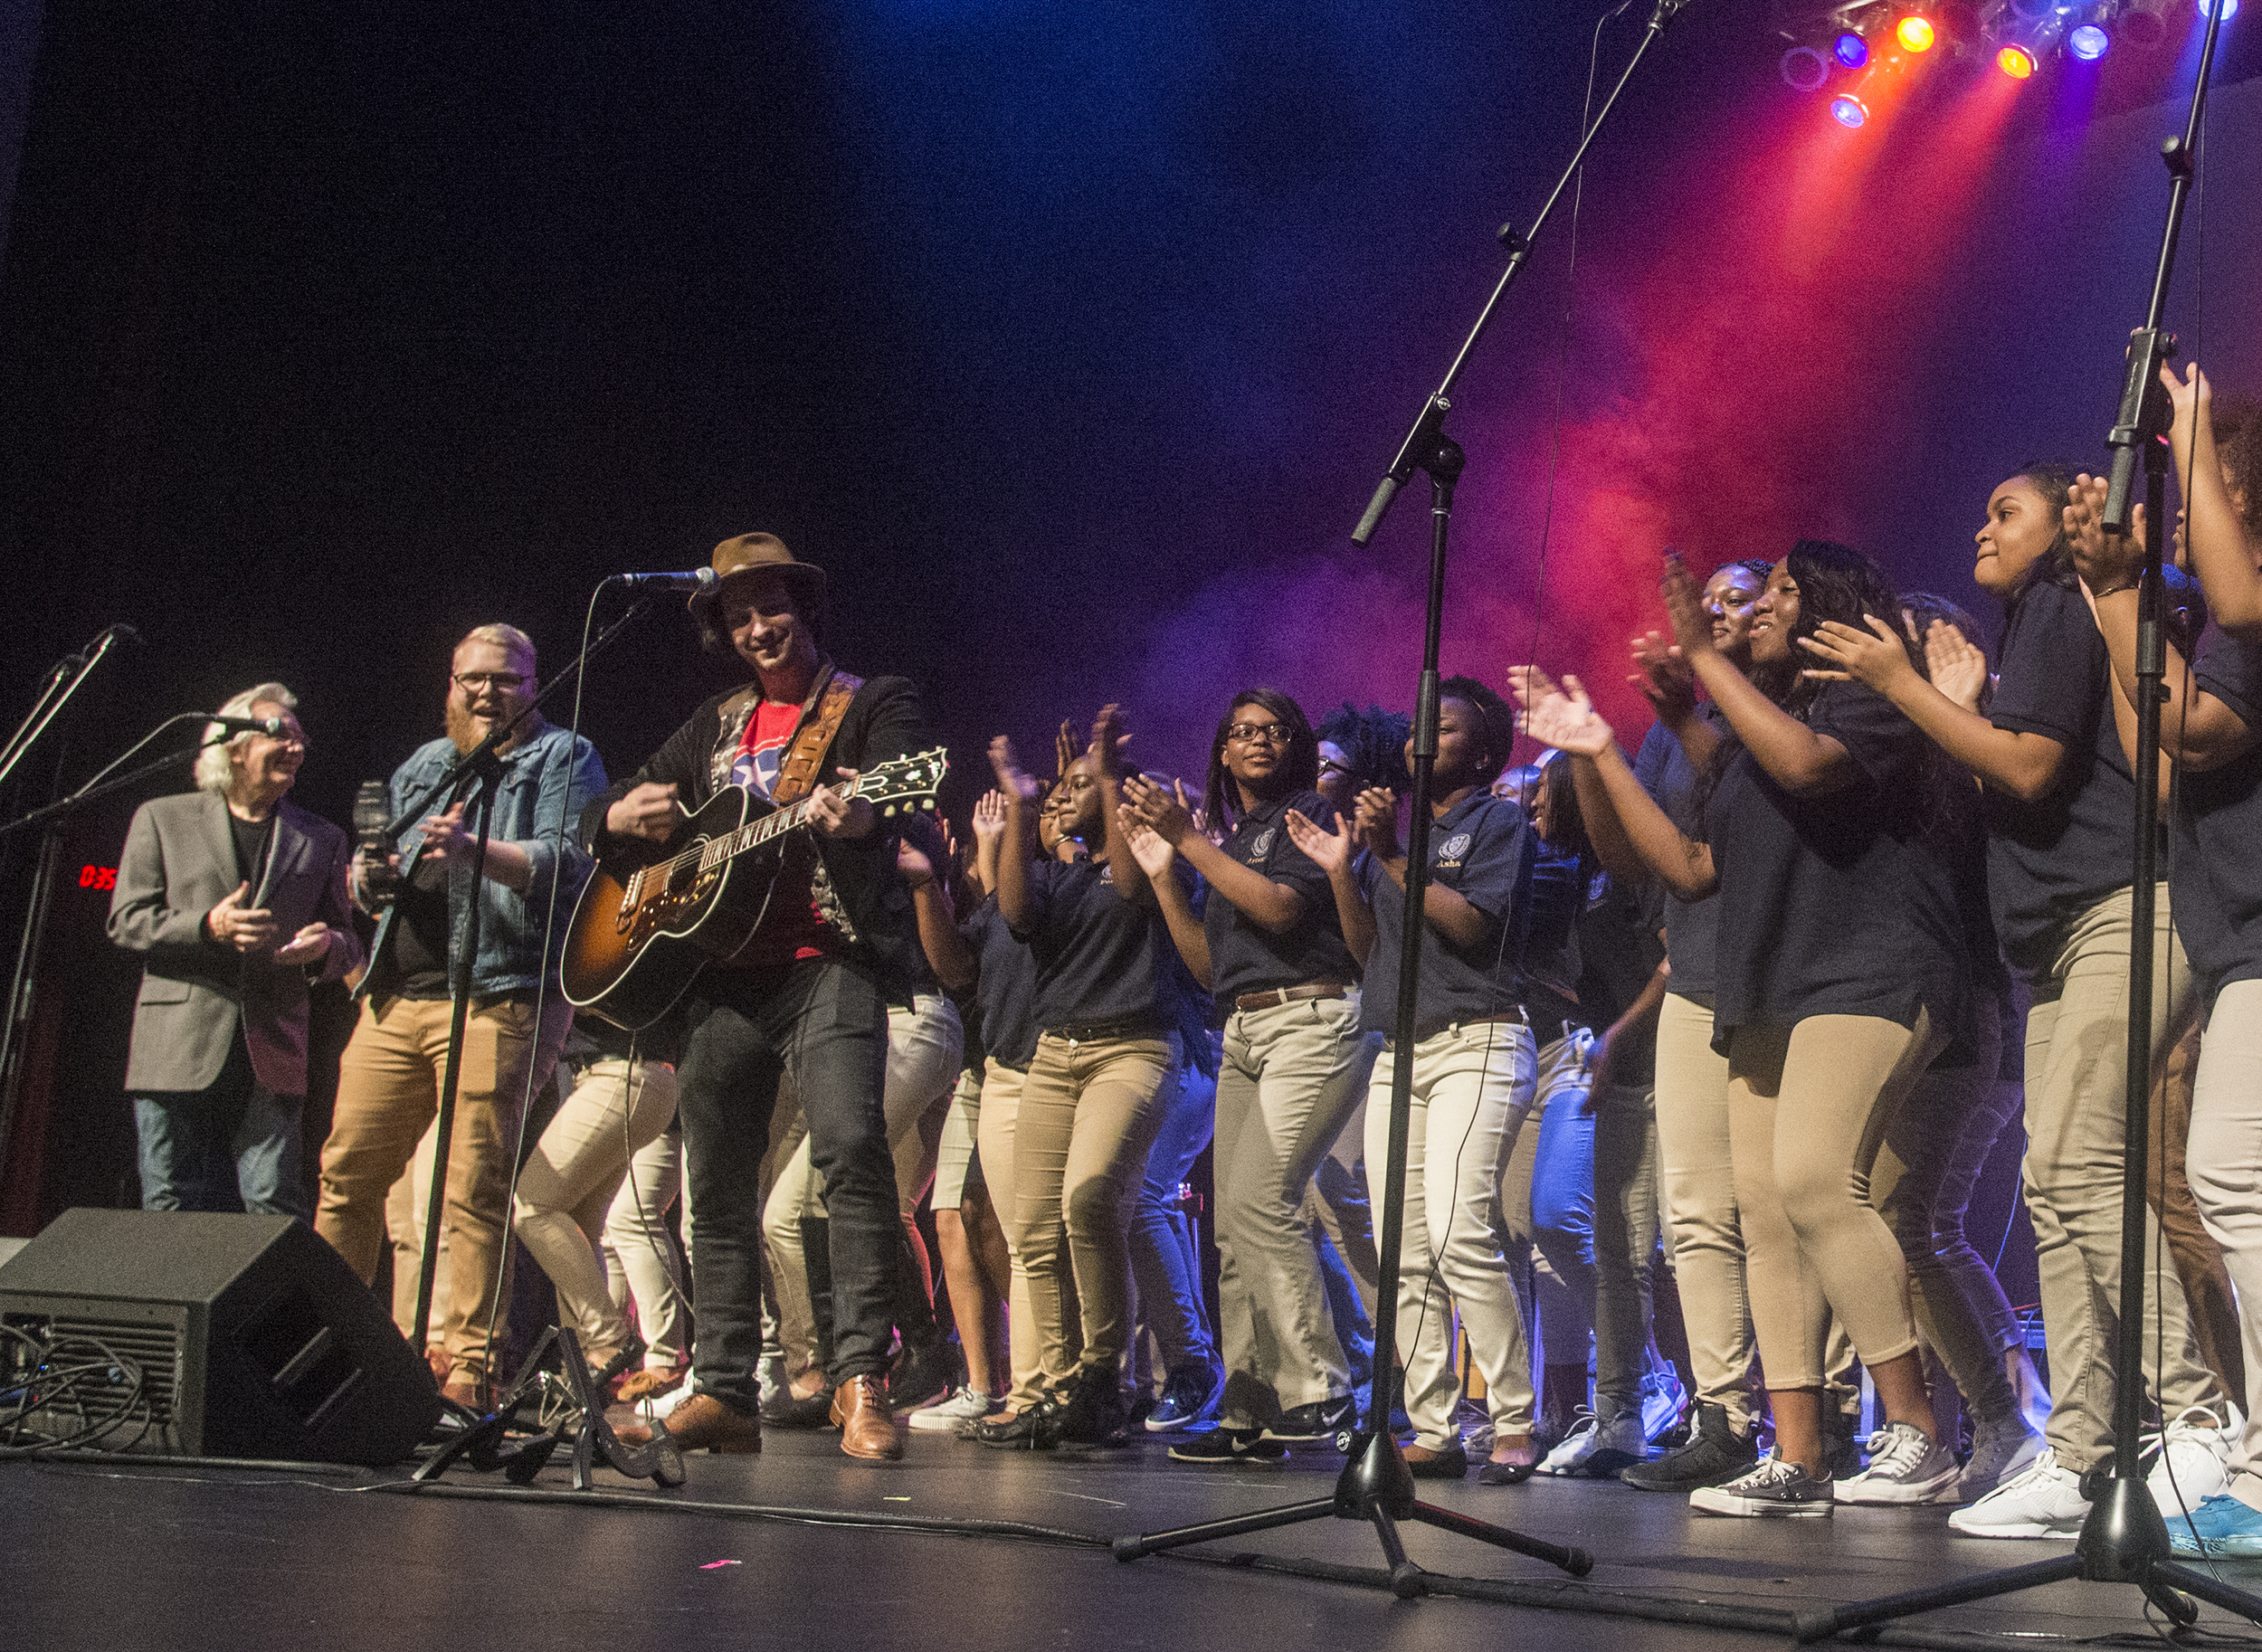 Rising Star Road Show - An extraordinary musical variety show featuring all types of National and Local acts that celebrates students